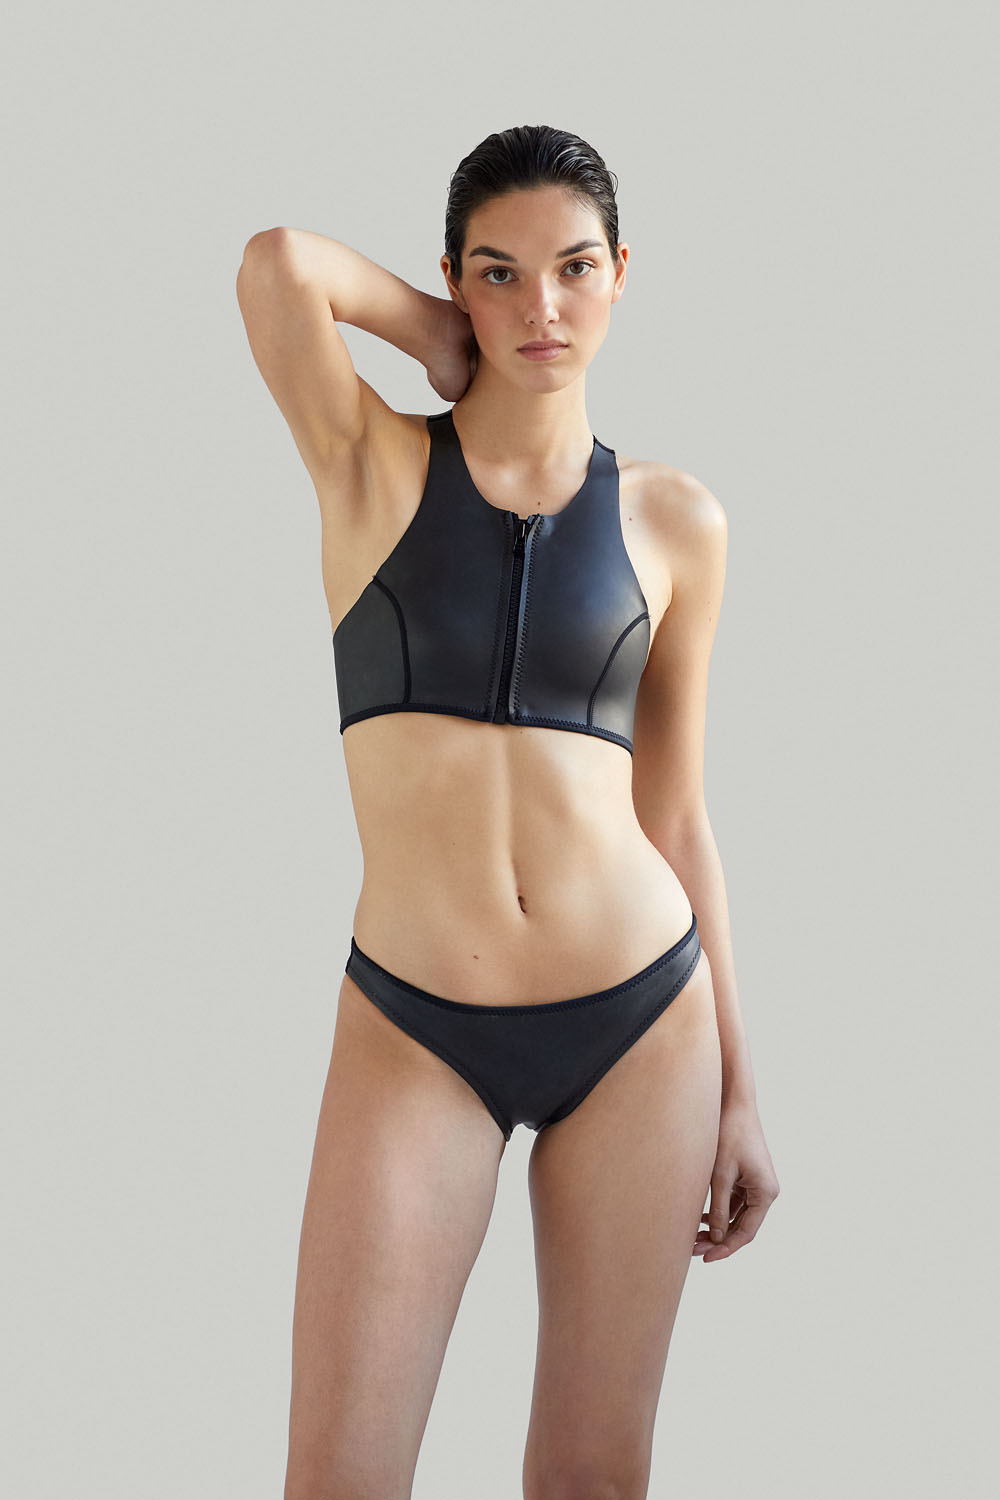 Neoprene bikini / Bikini de neopreno, Sustainable Luxury Swimwear / Ropa de baño sostenible, ecoprene surf / Margo in black by NOW_THEN